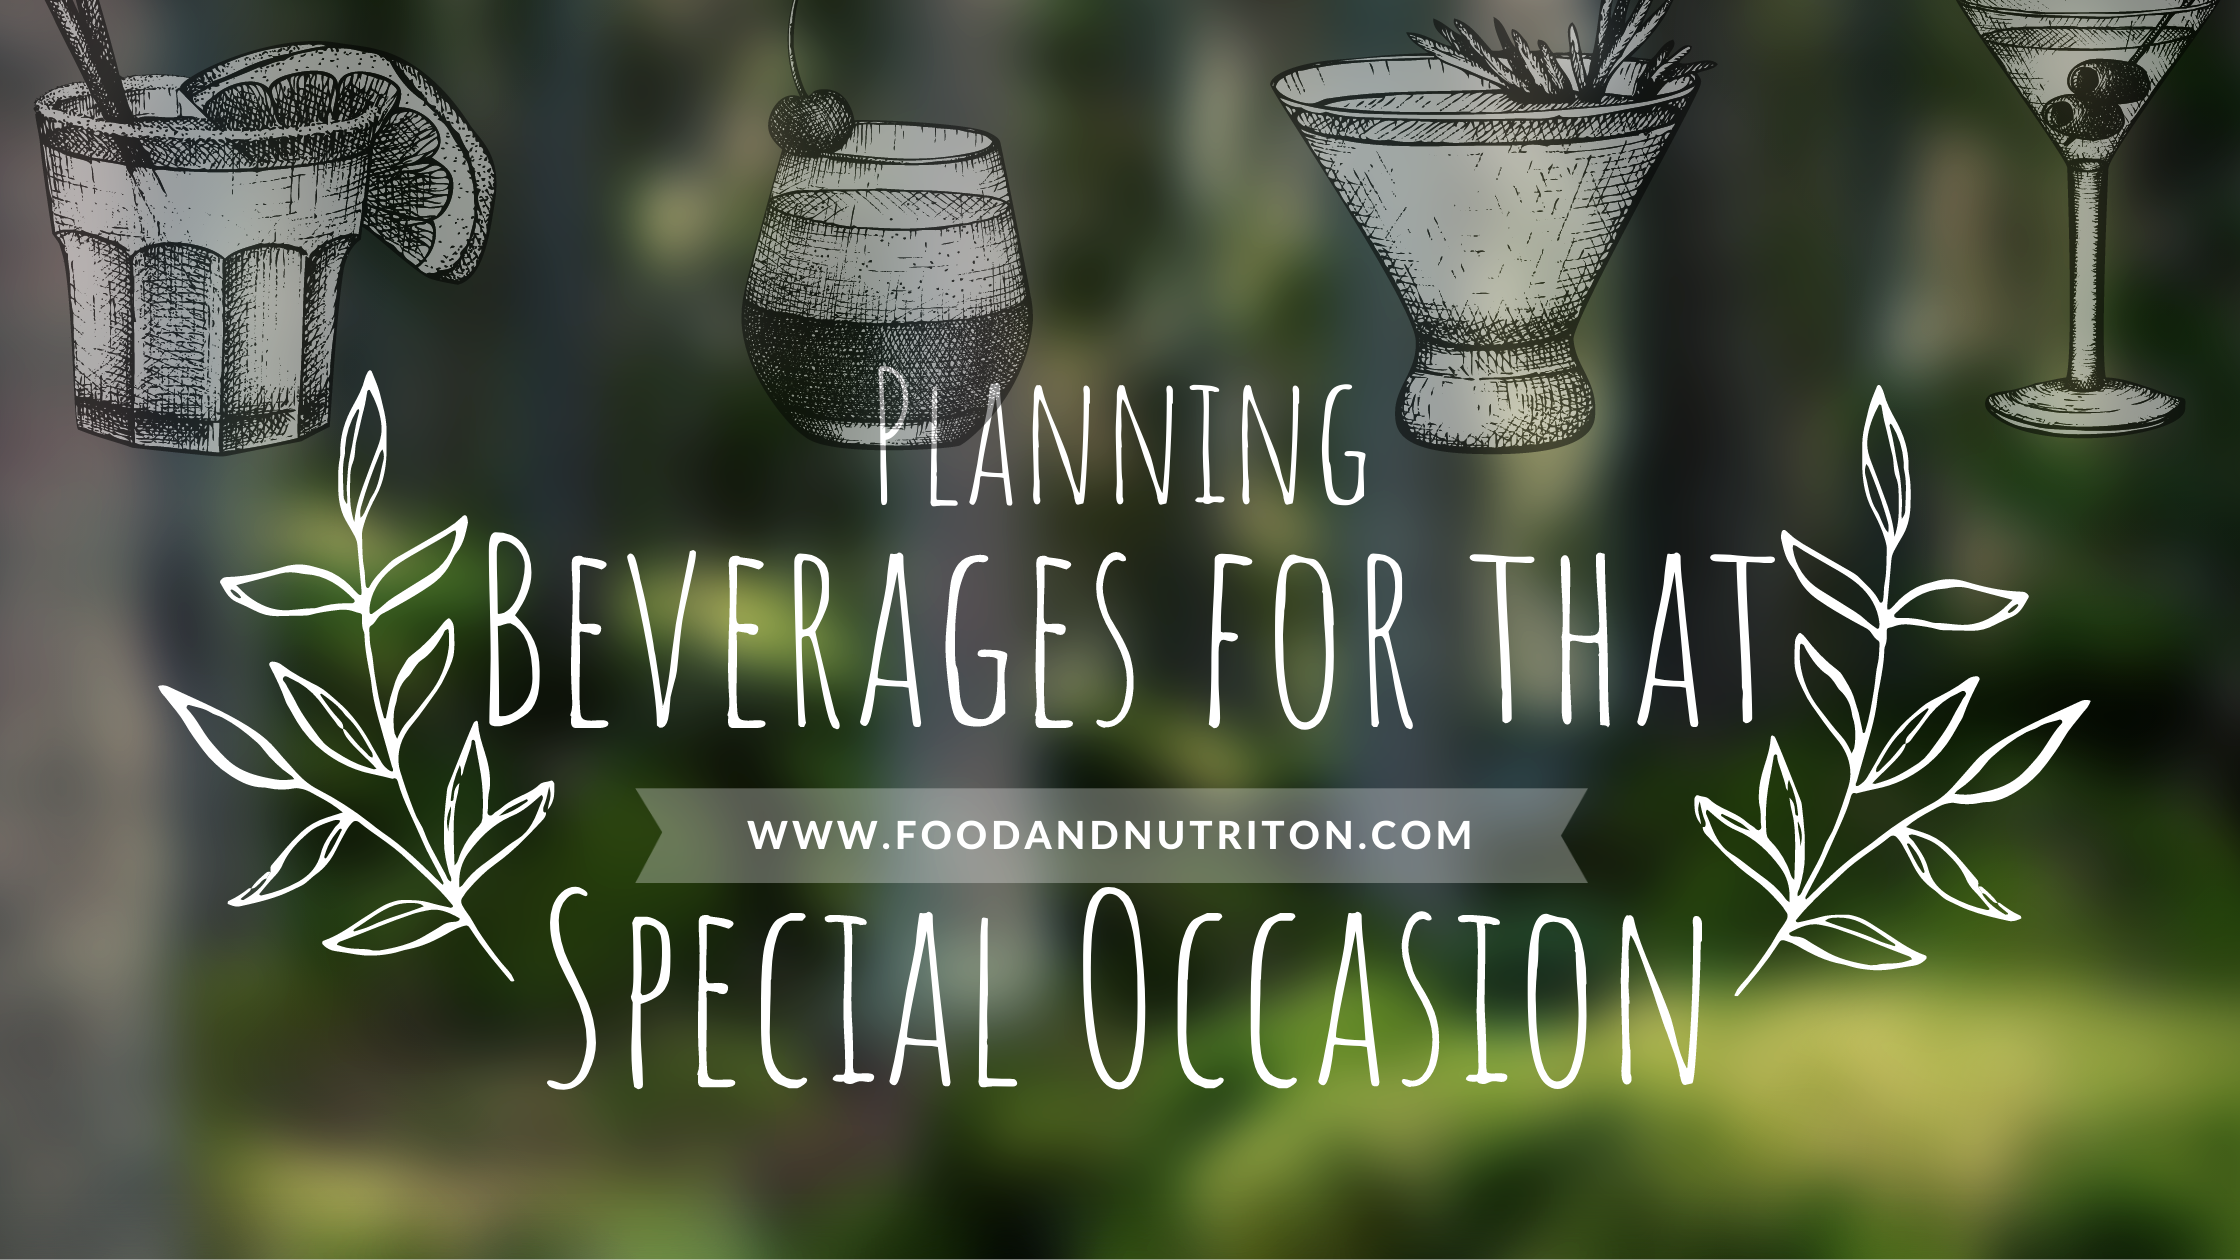 Planning Beverages for that Special Occasion